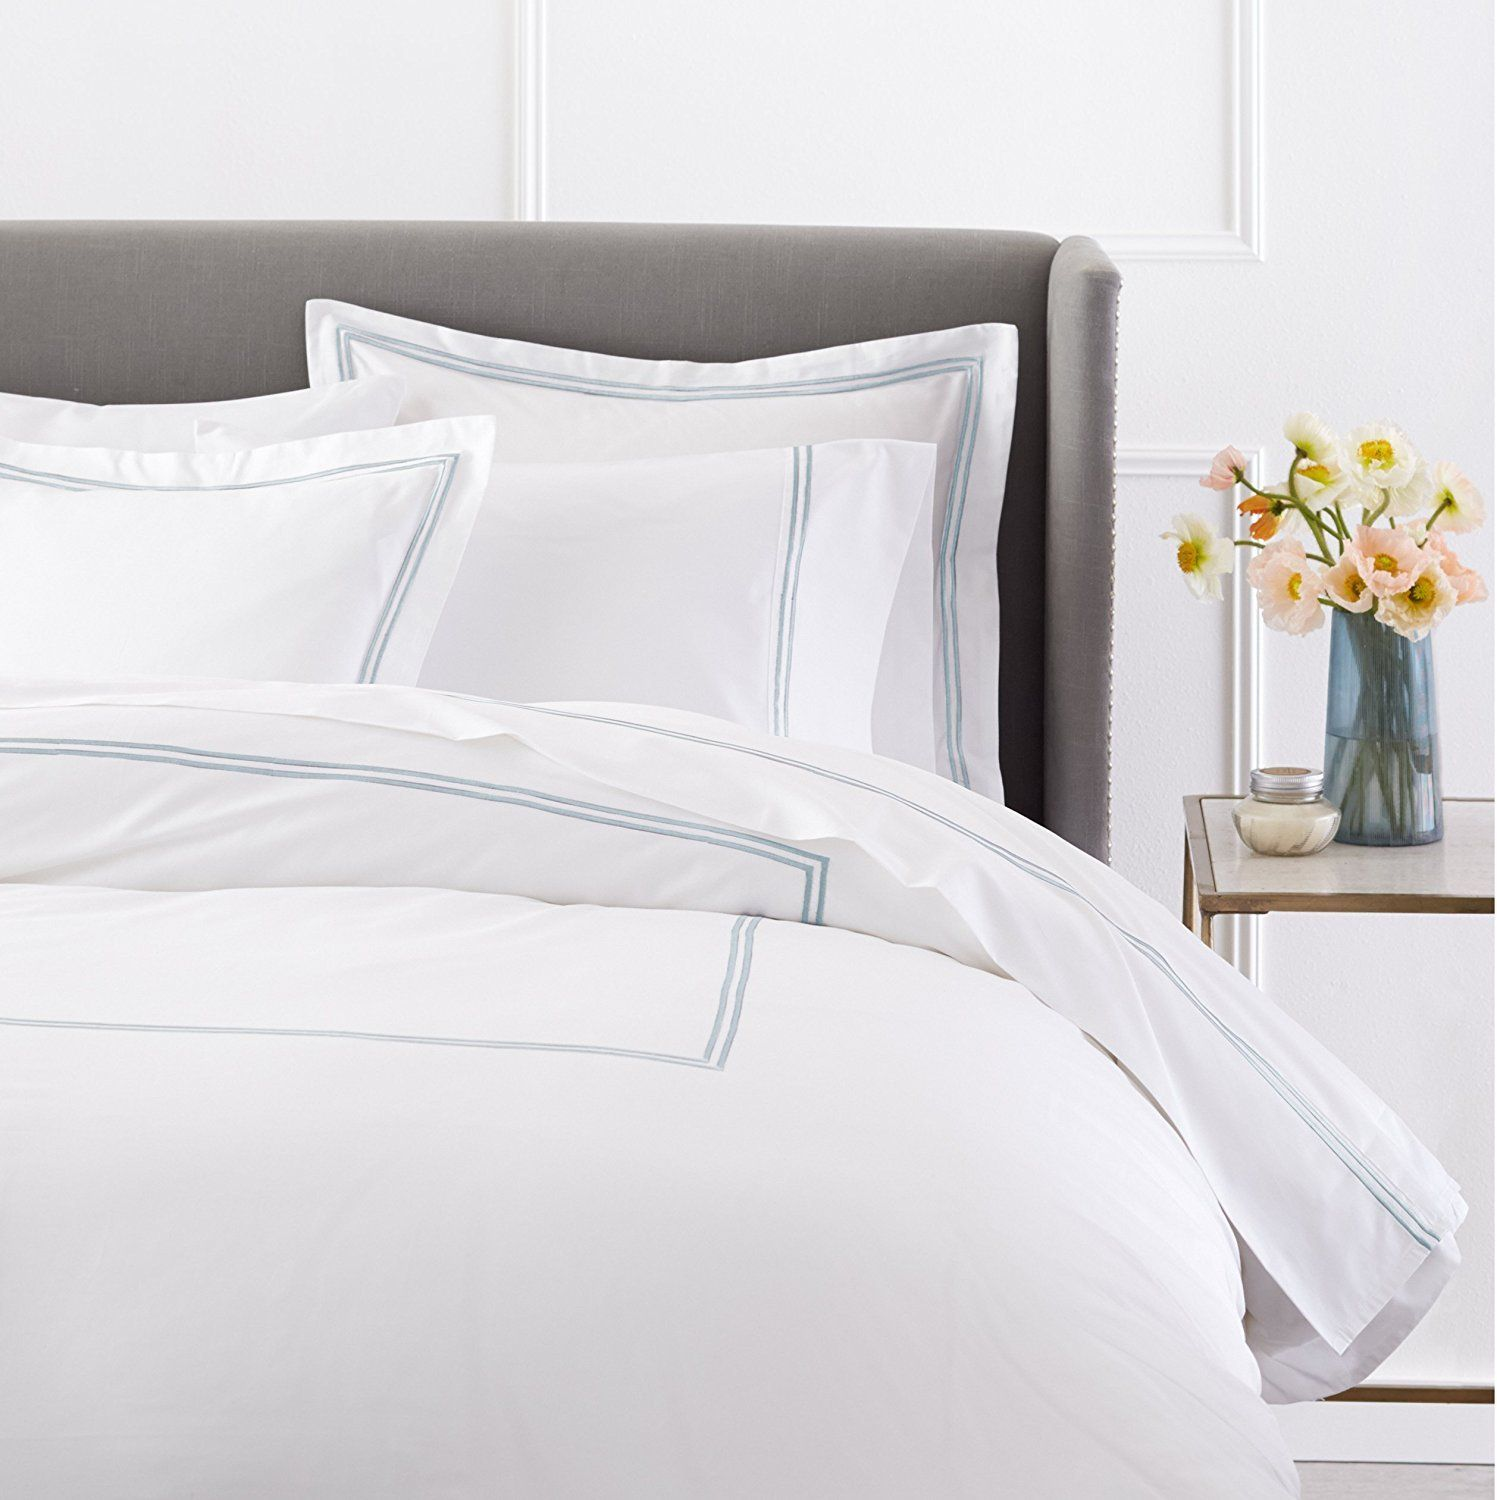 Buying Bedding For A Vacation Home Or Cabin Rental Best Duvet